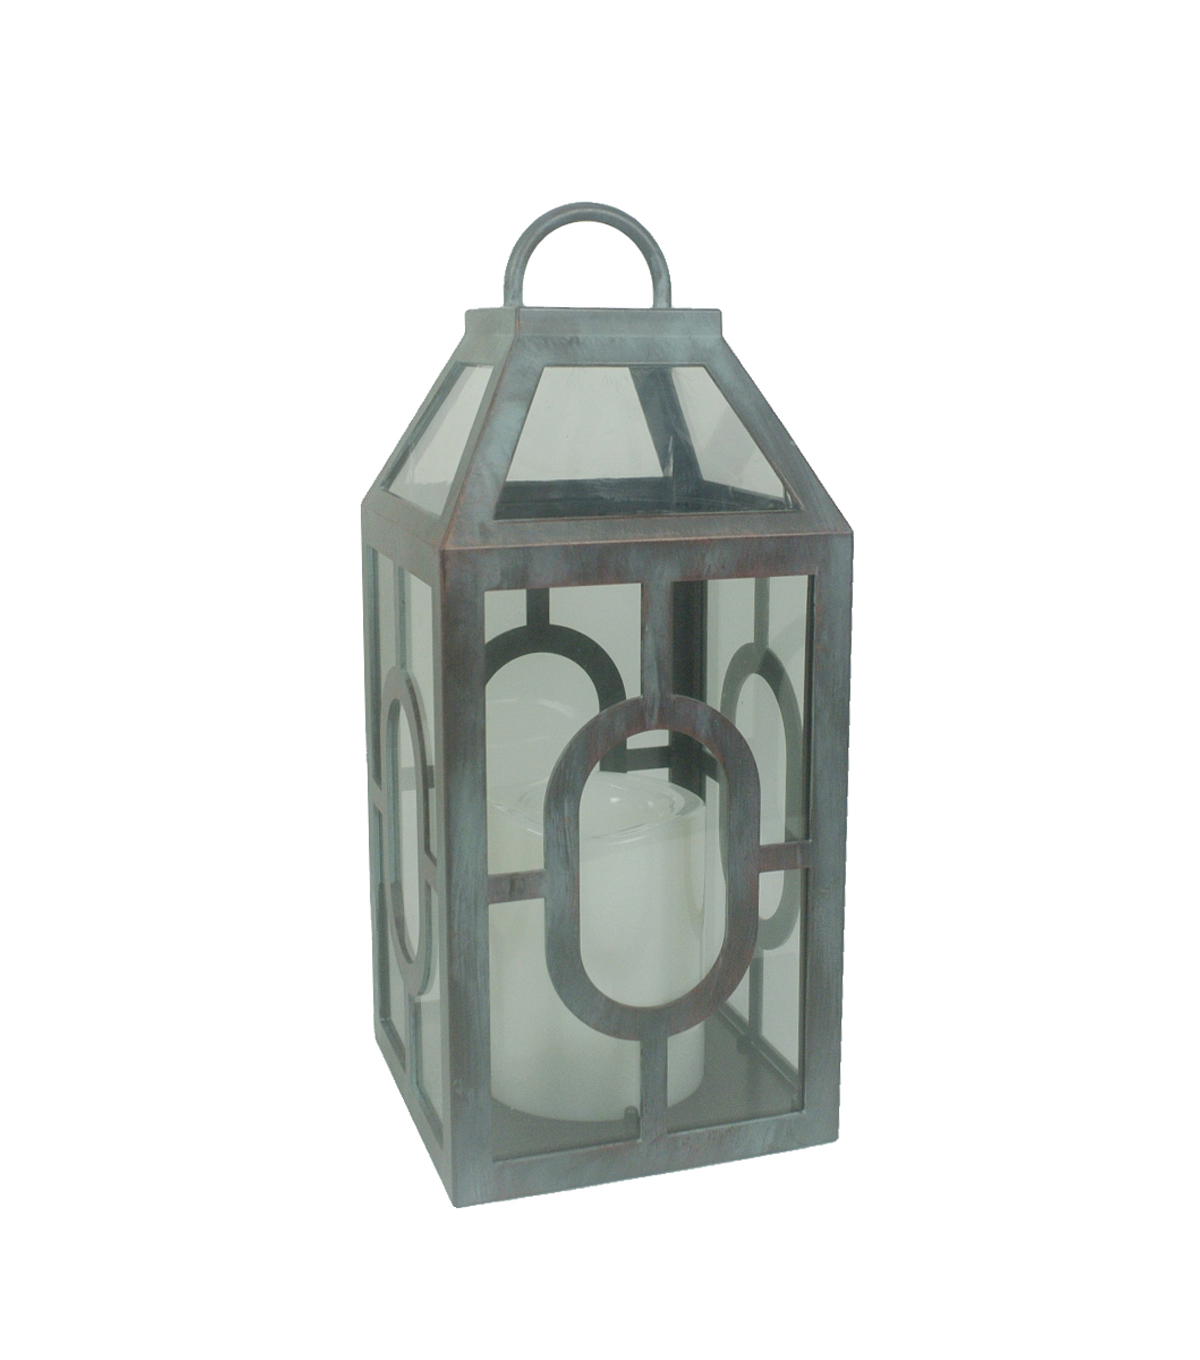 Hudson 43™ Candle & Light Collection Grey Distressed With LED Small